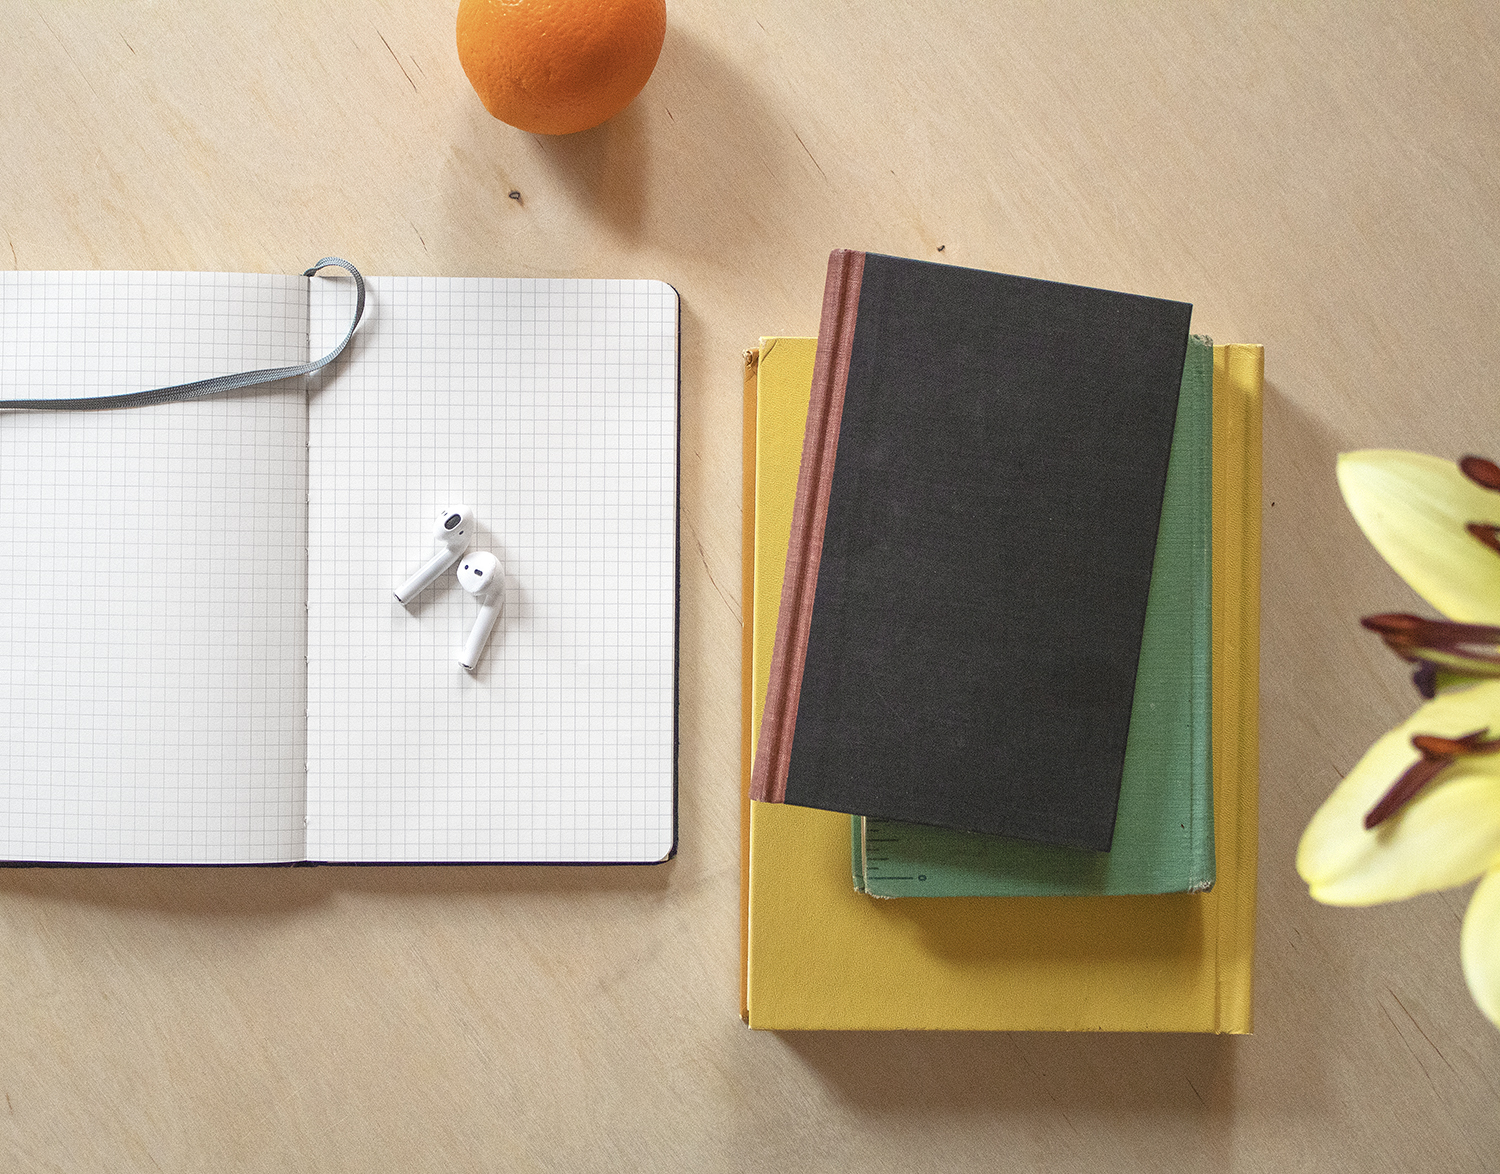 From the perspective of above, a grid-lined notebook lies open on a table, with earbuds on top. An orange is a few inches above the notebook and to the right is a stack of three books. A few petals of a flower are on the right edge of the image.